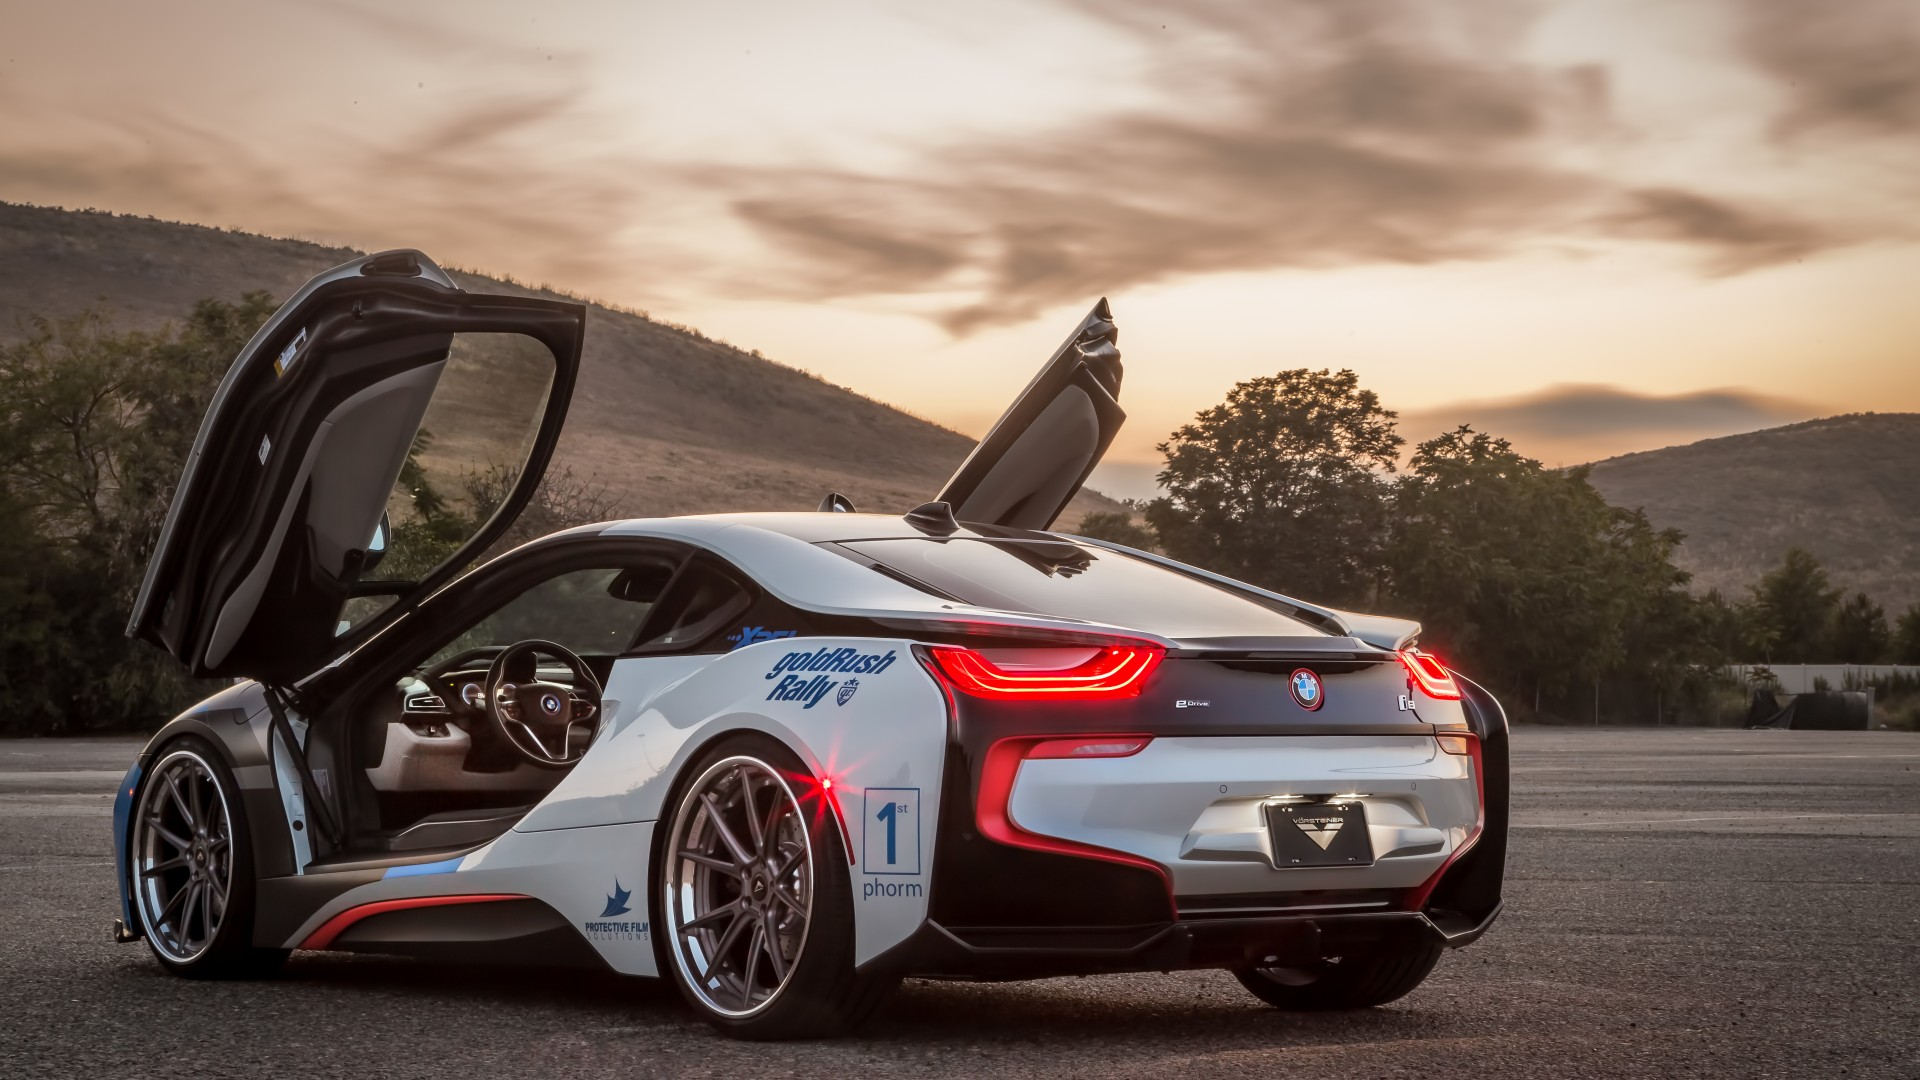 Car Pros Renton >> Bmw I8 Pink.BMW Photo Gallery. BMW Photo Gallery. BMW I8 ...